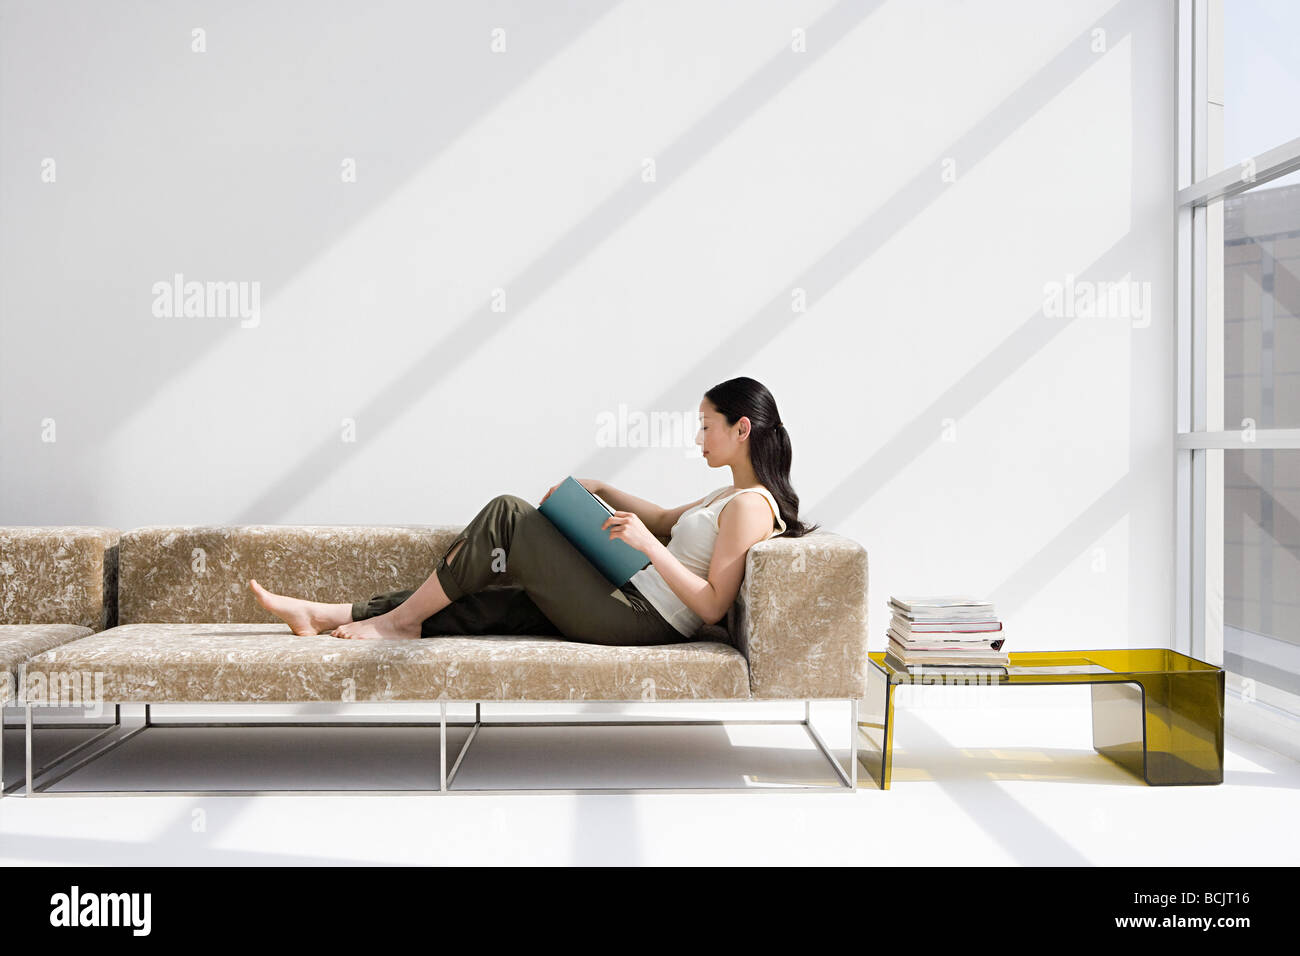 Woman reading on a sofa - Stock Image